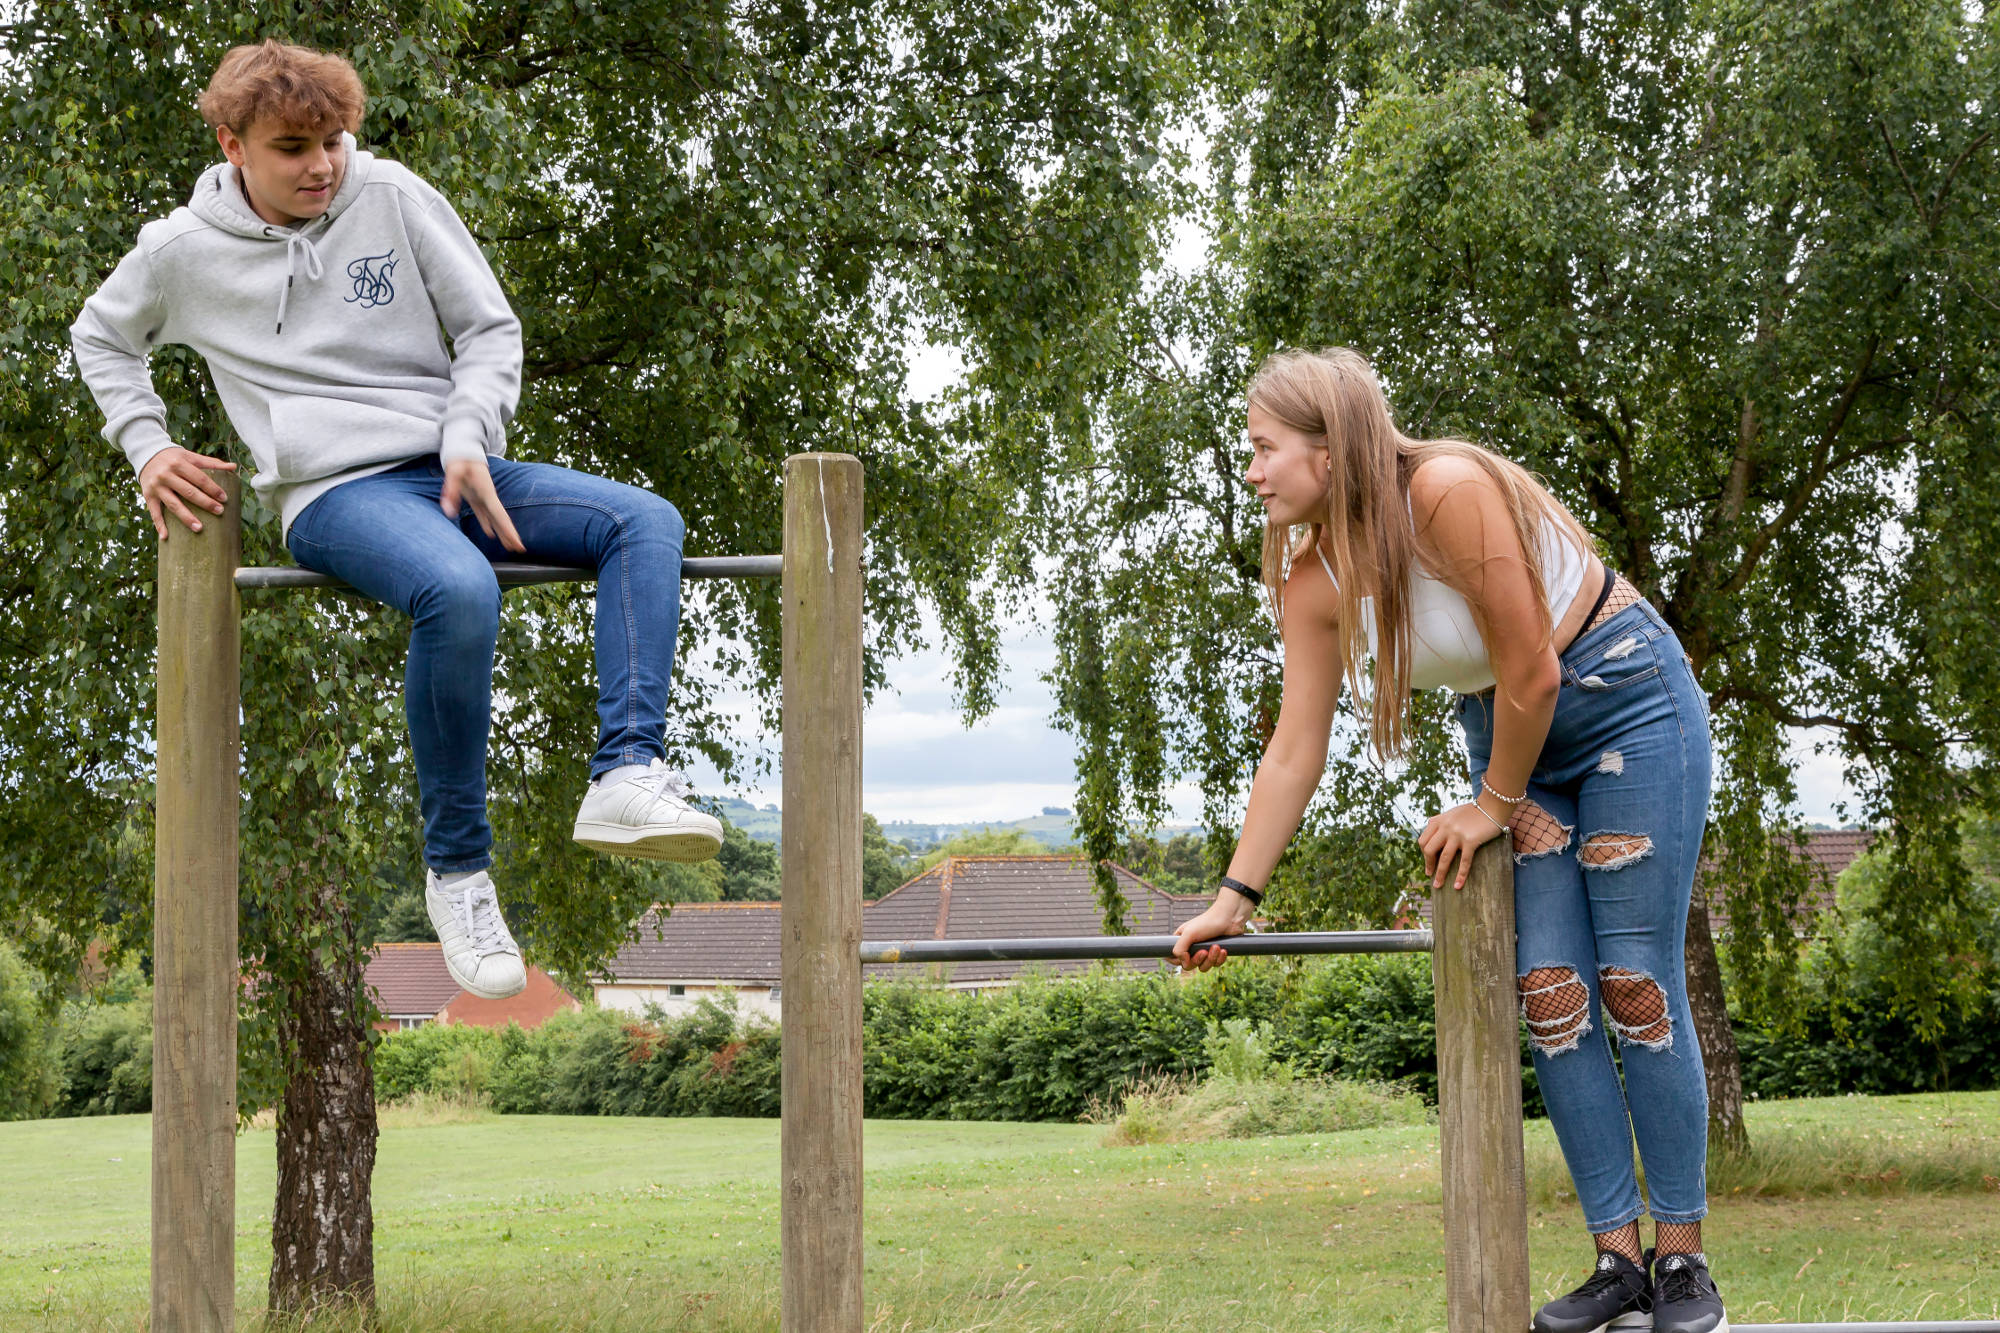 Two young people on a climbing frame